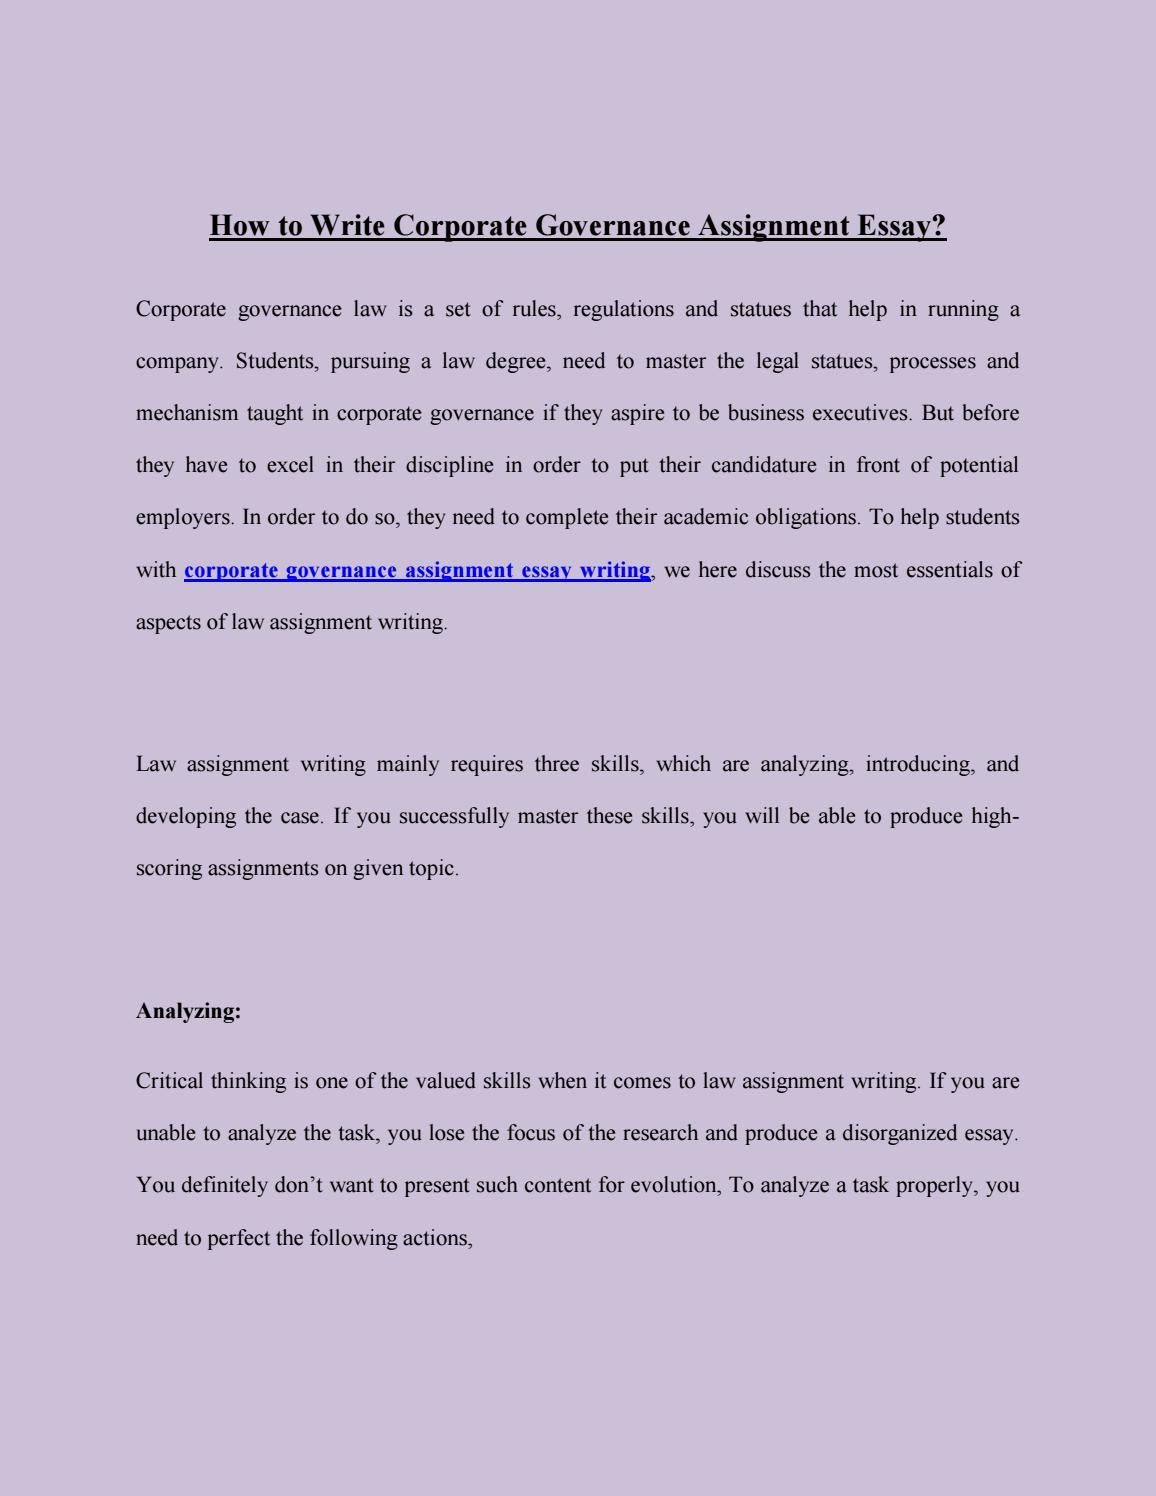 assignment essay descriptive essay assignment definition essay  how to write corporate governance assignment essay by ameeliabrown how to write corporate governance assignment essay